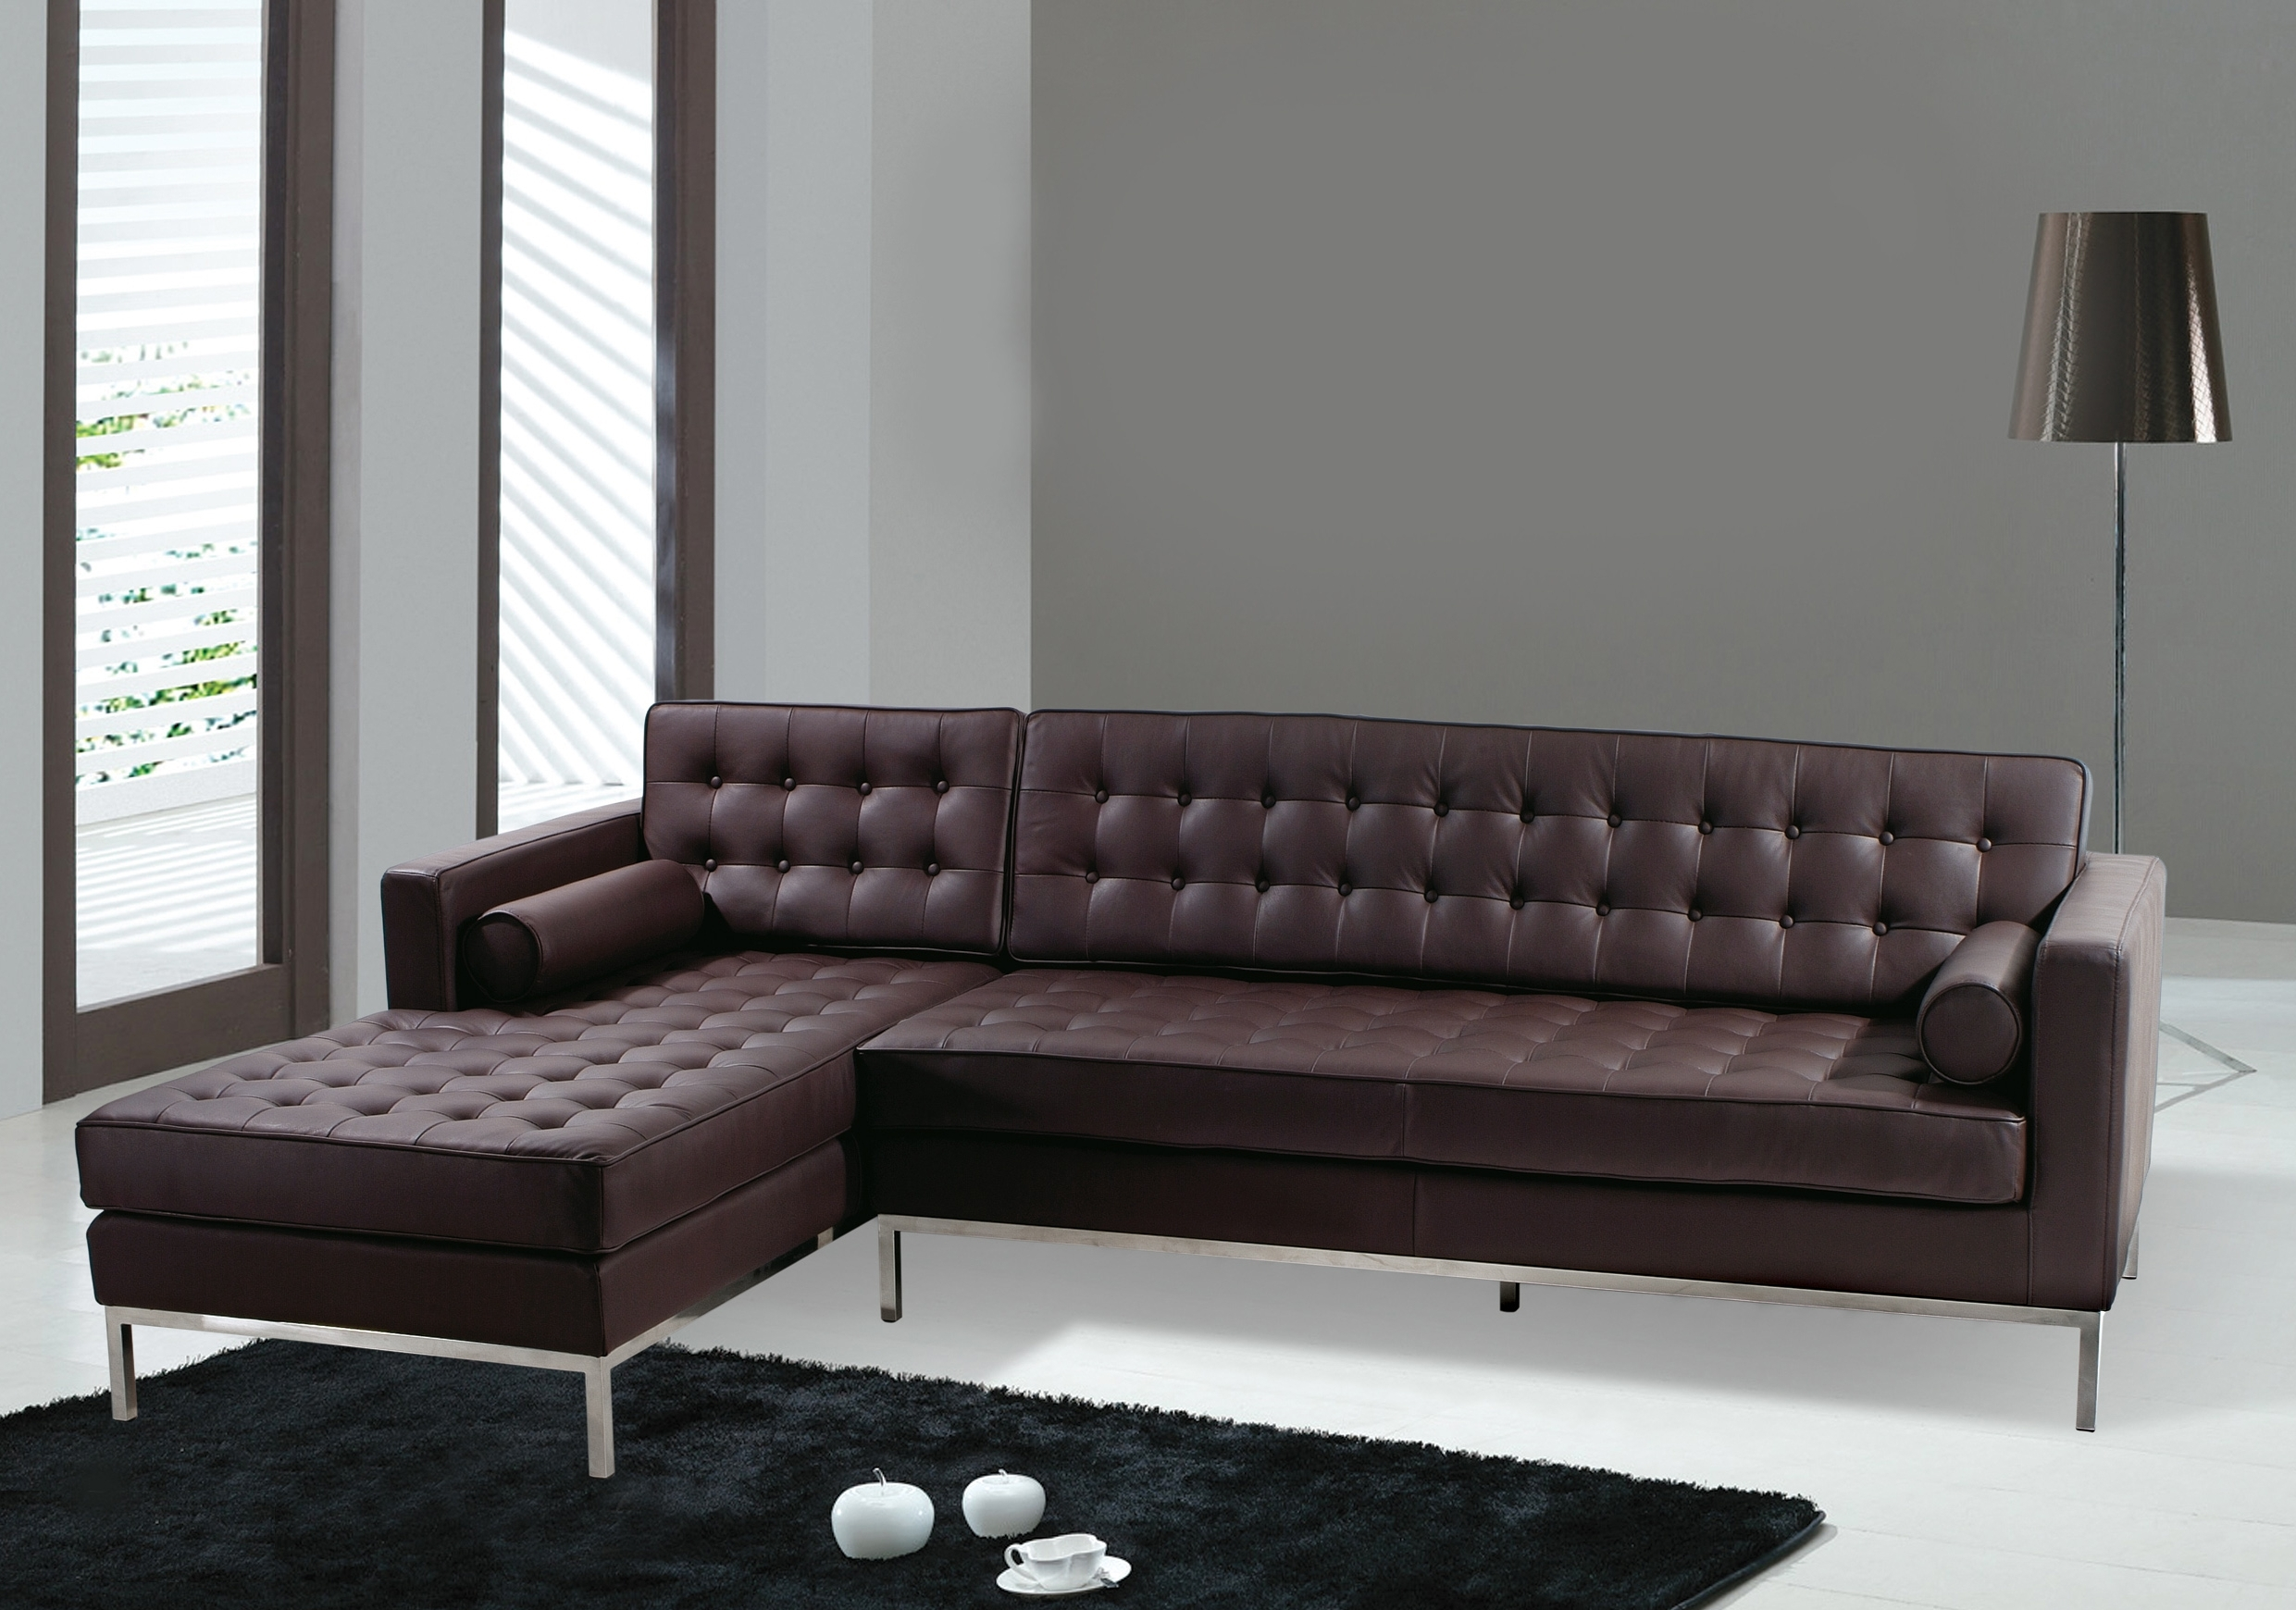 Dallas Sectional Sofas Intended For Well Known Dallas Sectional Sofa – Fjellkjeden (View 5 of 15)